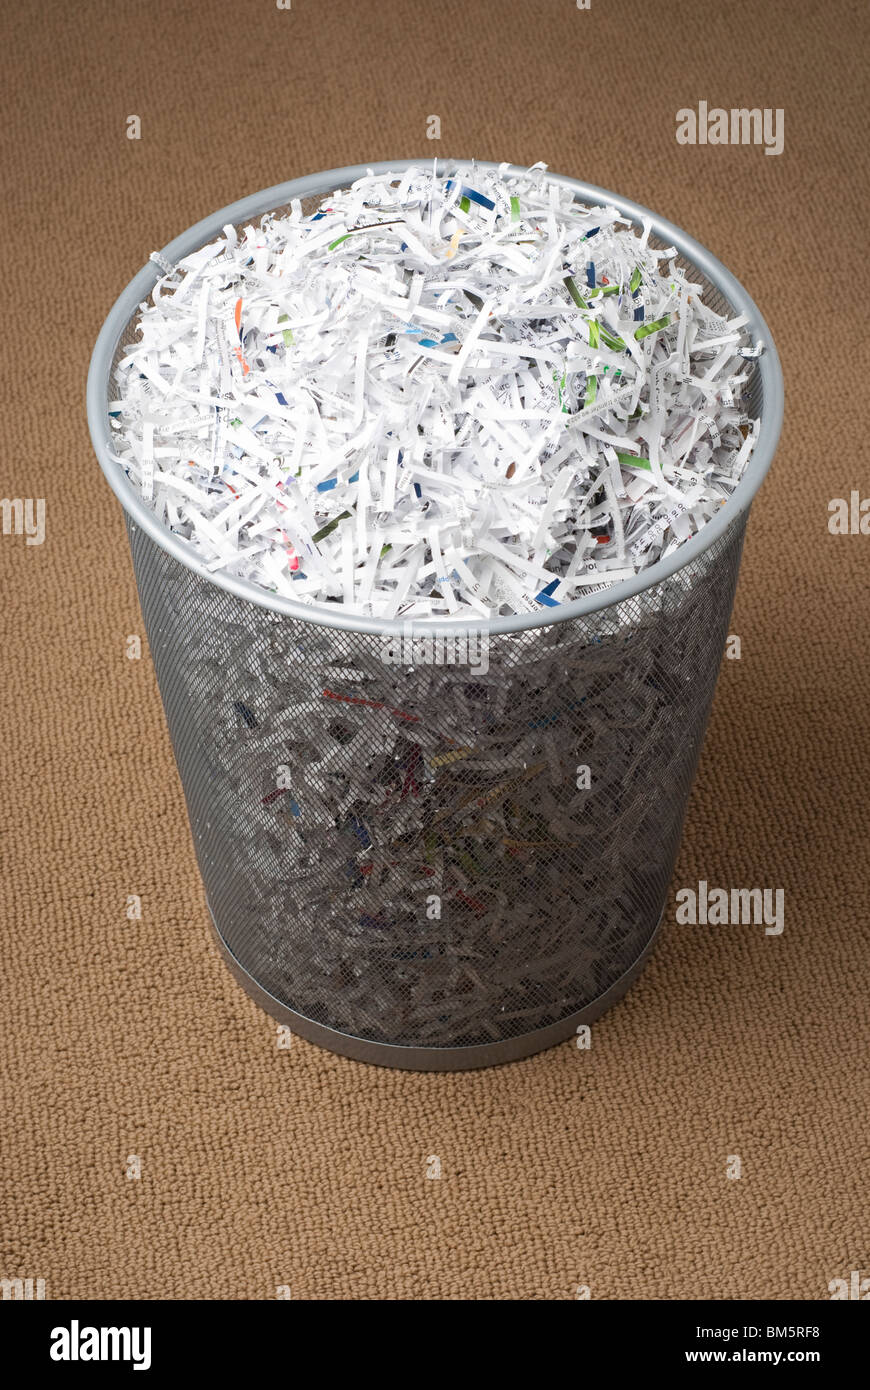 wastepaper basket filled with shredded paper on a carpet. - Stock Image